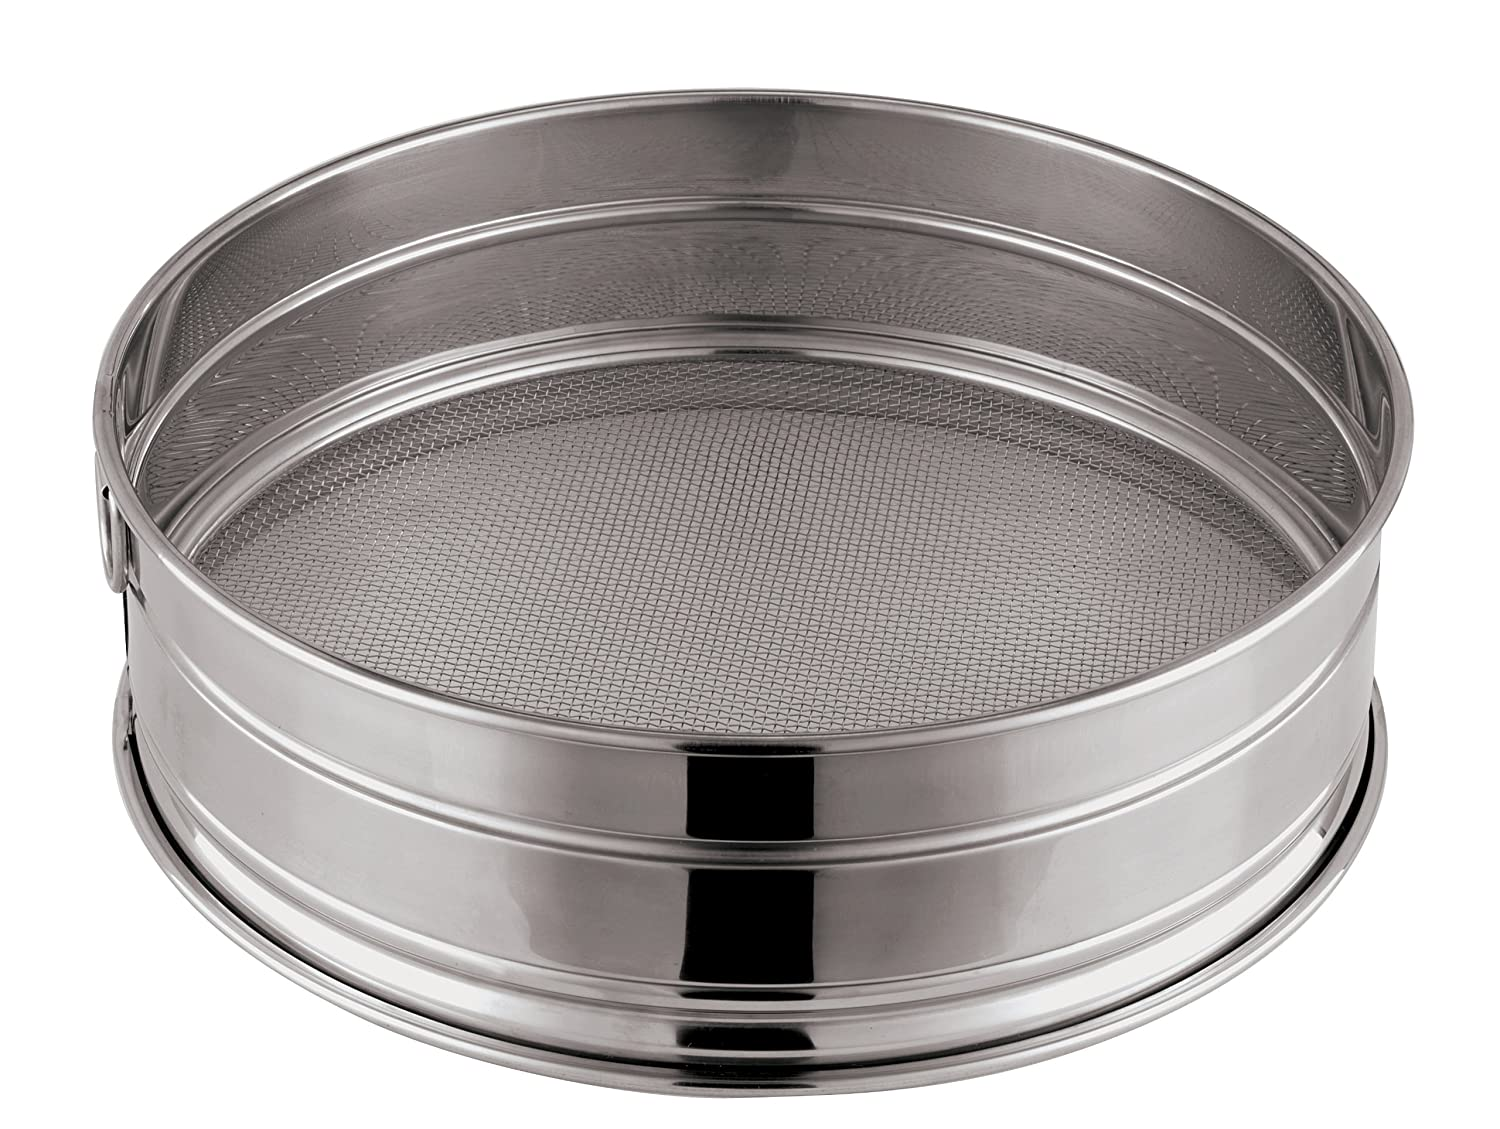 Paderno World Cuisine 11-7/8-Inch Stainless-Steel Coarse Mesh Flour Sieve, 12 Perforations 12606-30